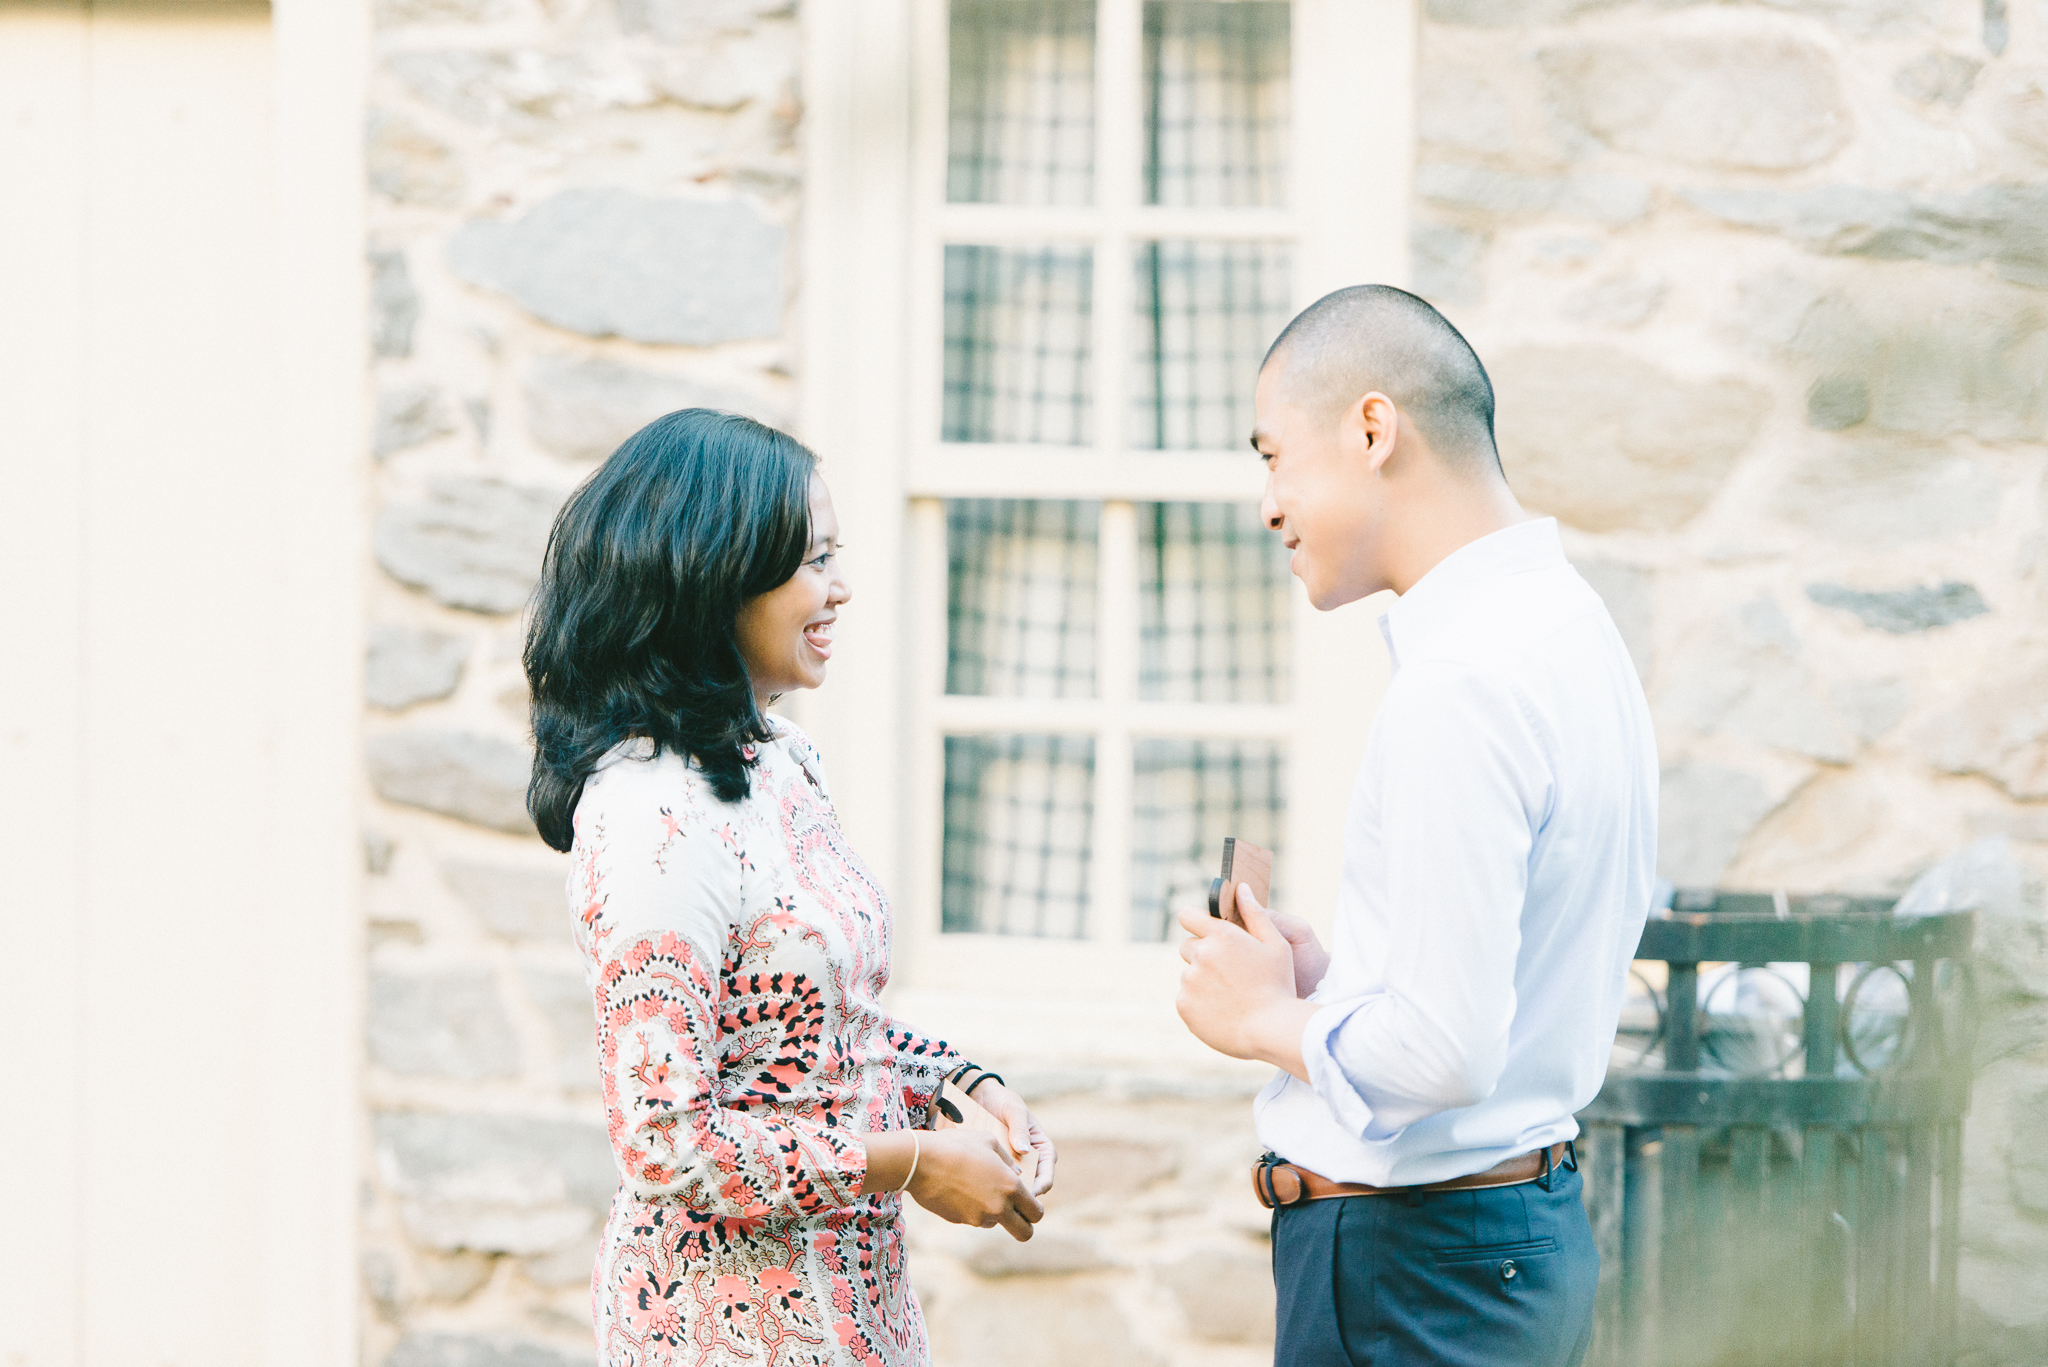 old-stone-house-garden-georgetown-proposal-dc-wedding-photographer-8